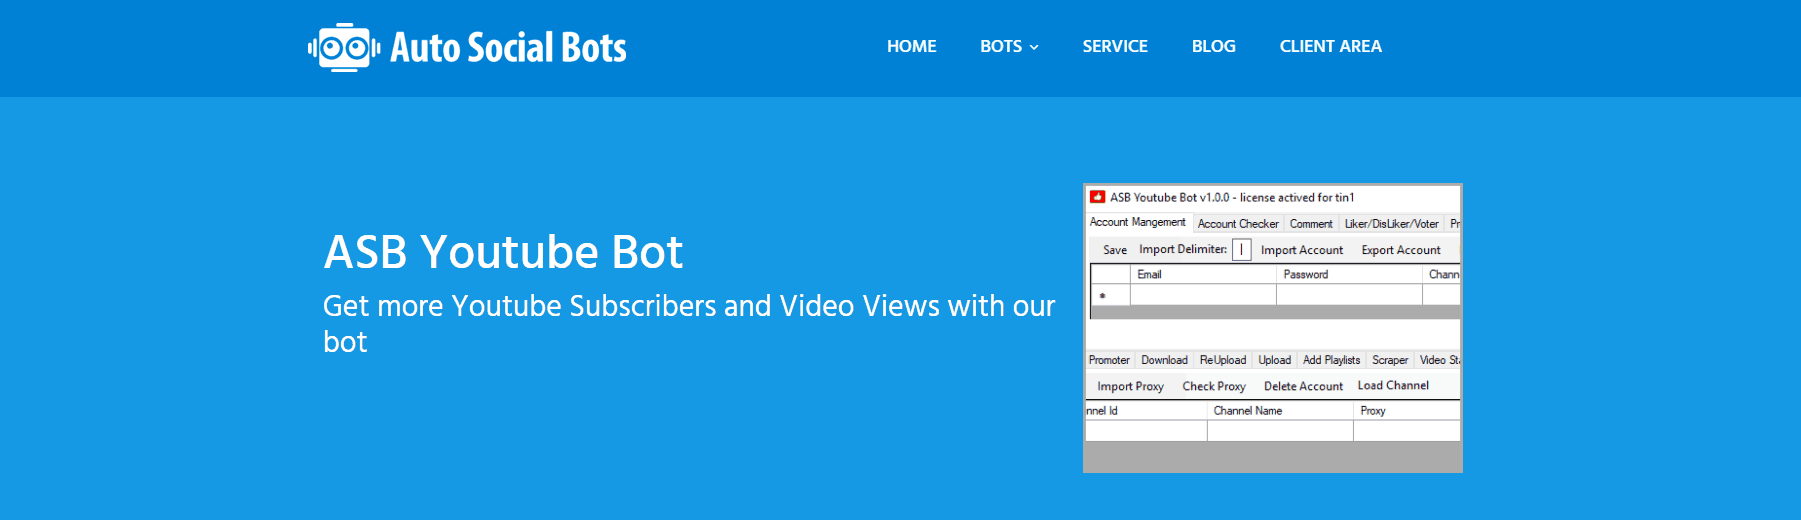 YouTube Bots and Tools That Will Grow Your Channel